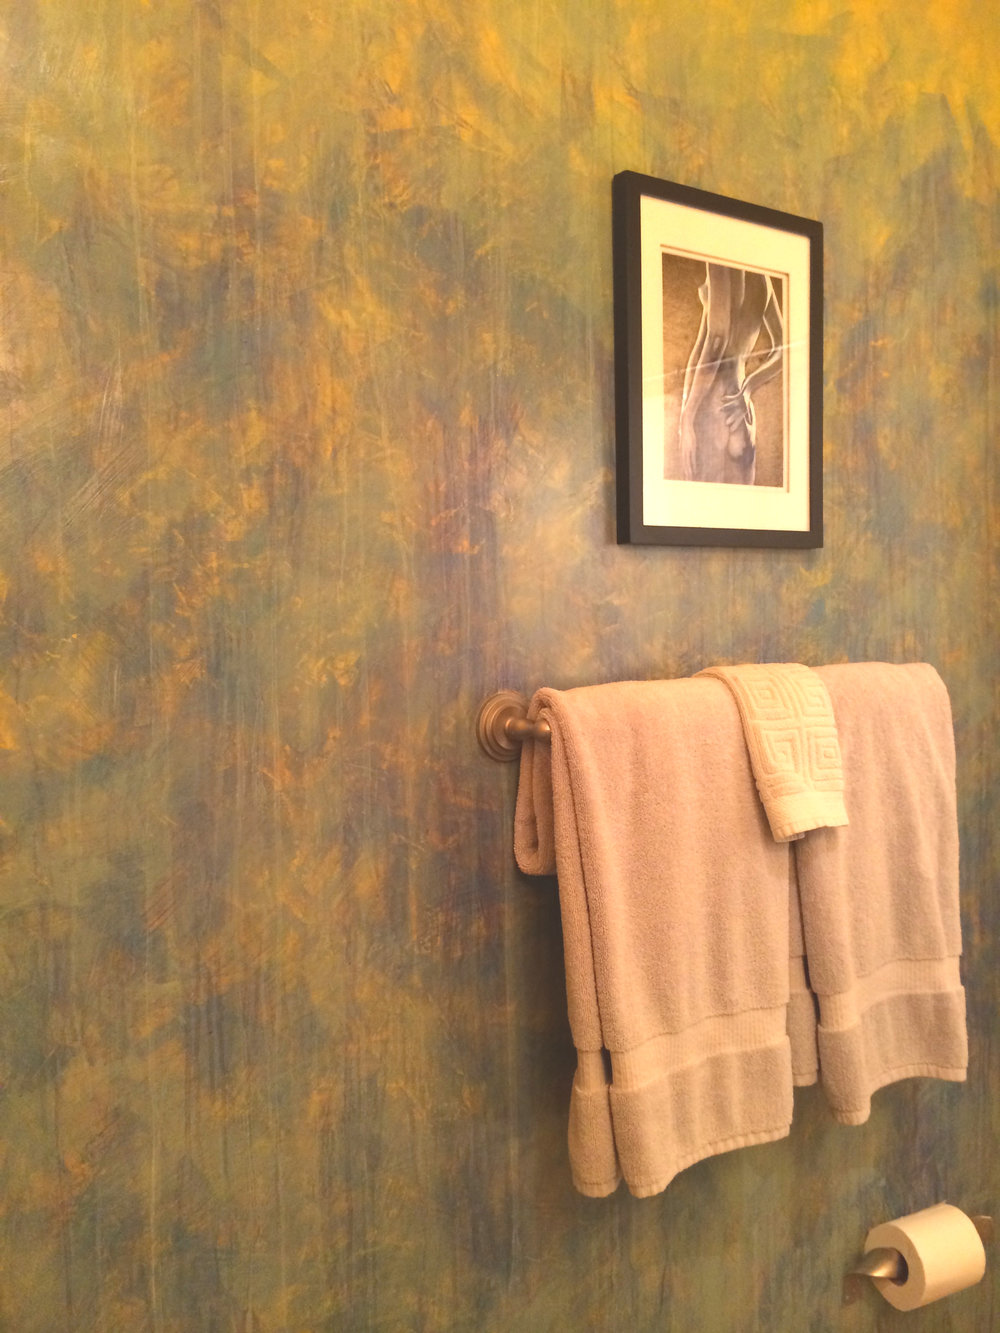 Bathroom wall in acrylic and venetian plaster  wall hunt artwork by unknown artist from Ecuador